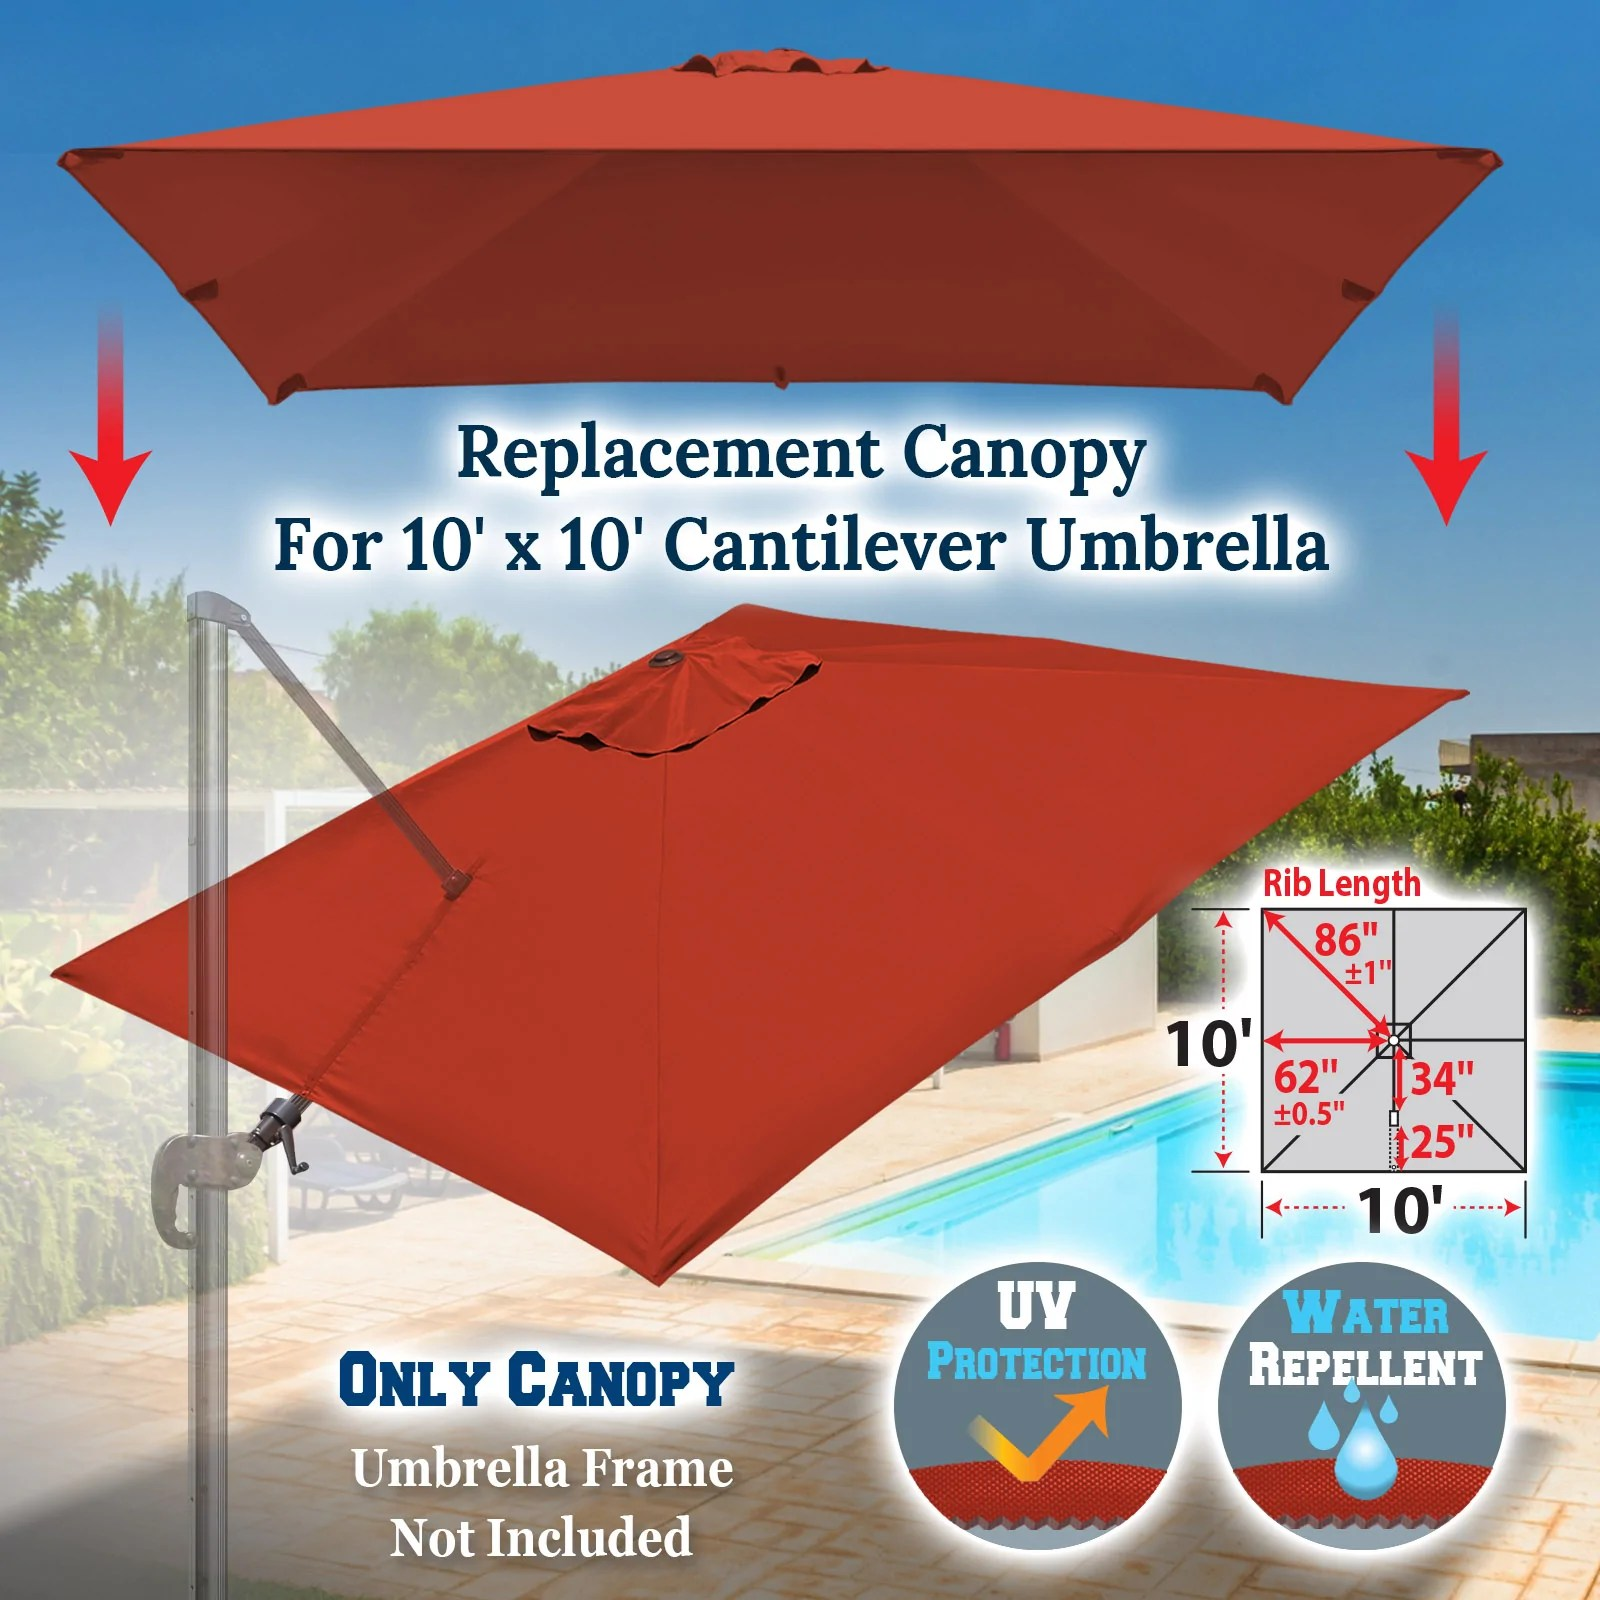 canopy only umbrella cover canopy uv